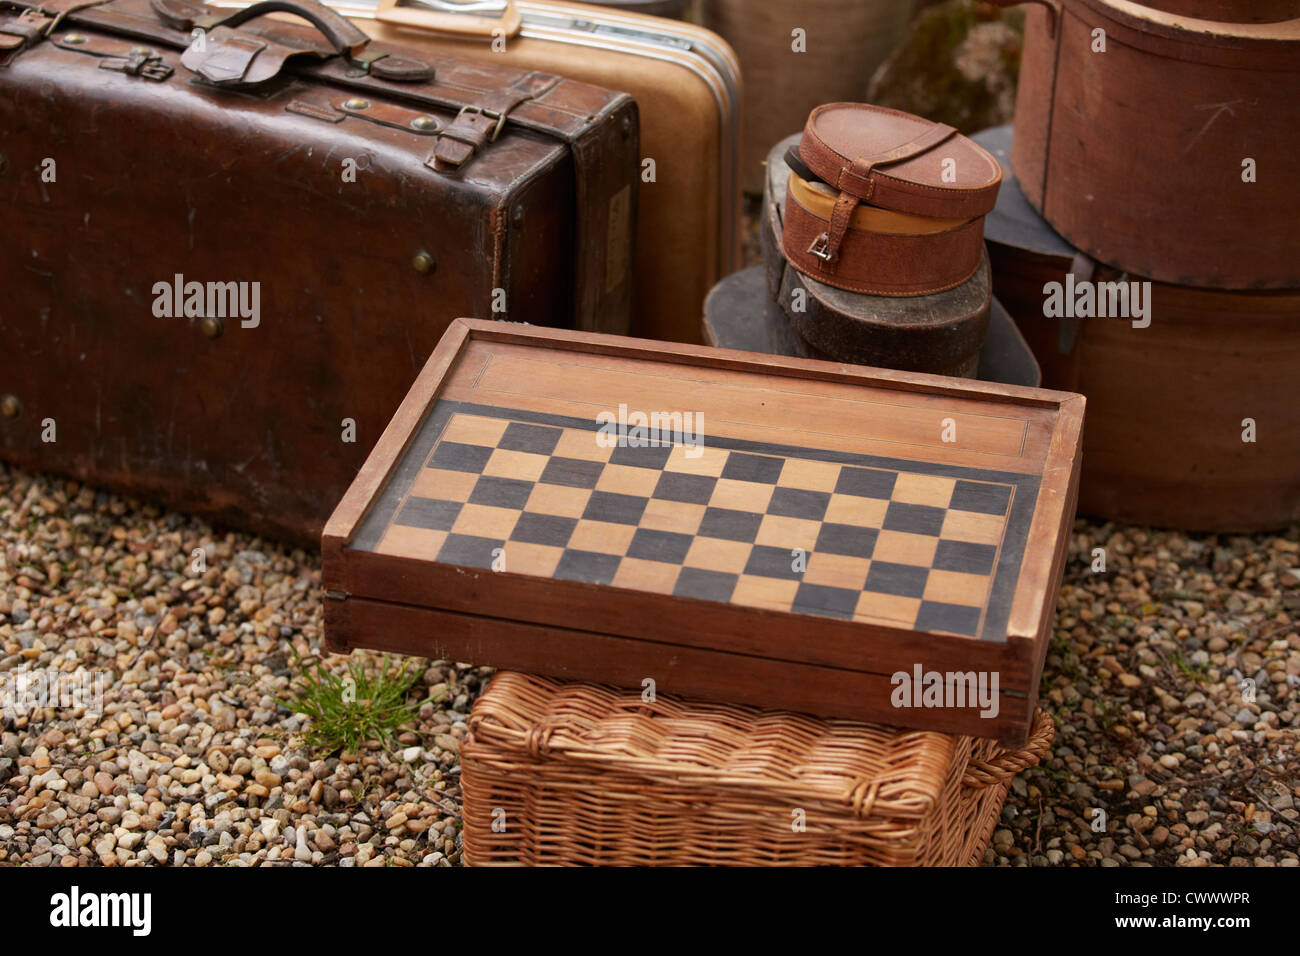 Wooden checkers board with luggage boxed Stock Photo